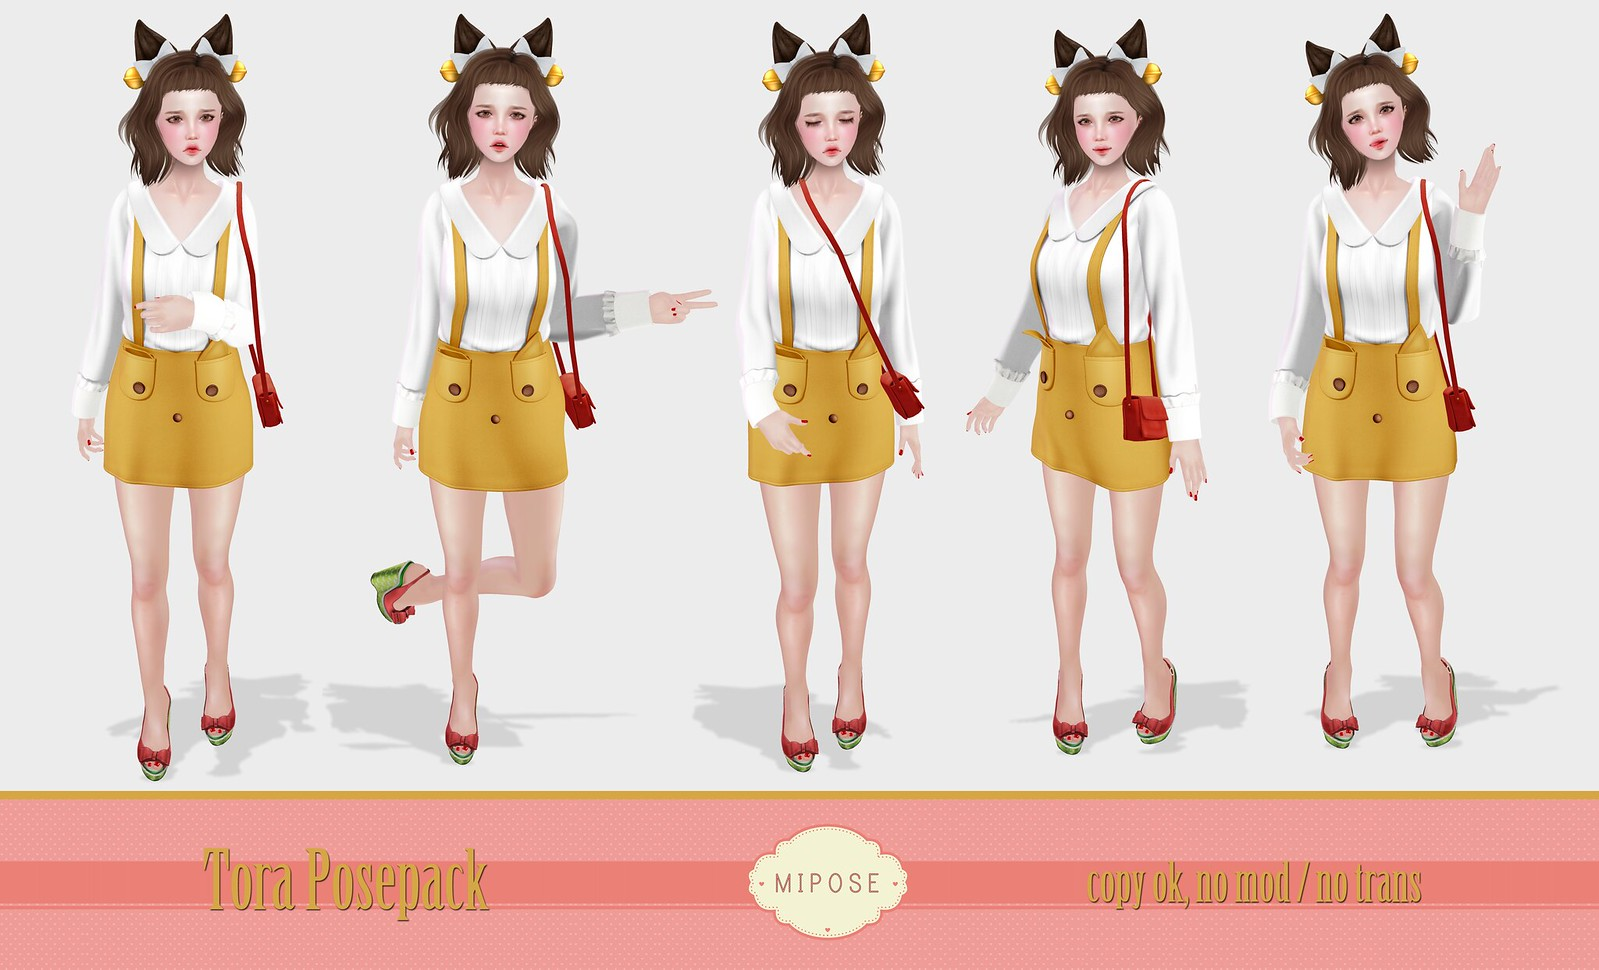 MiPose - Tora Posepack (Inworld Stores Opening Offer)